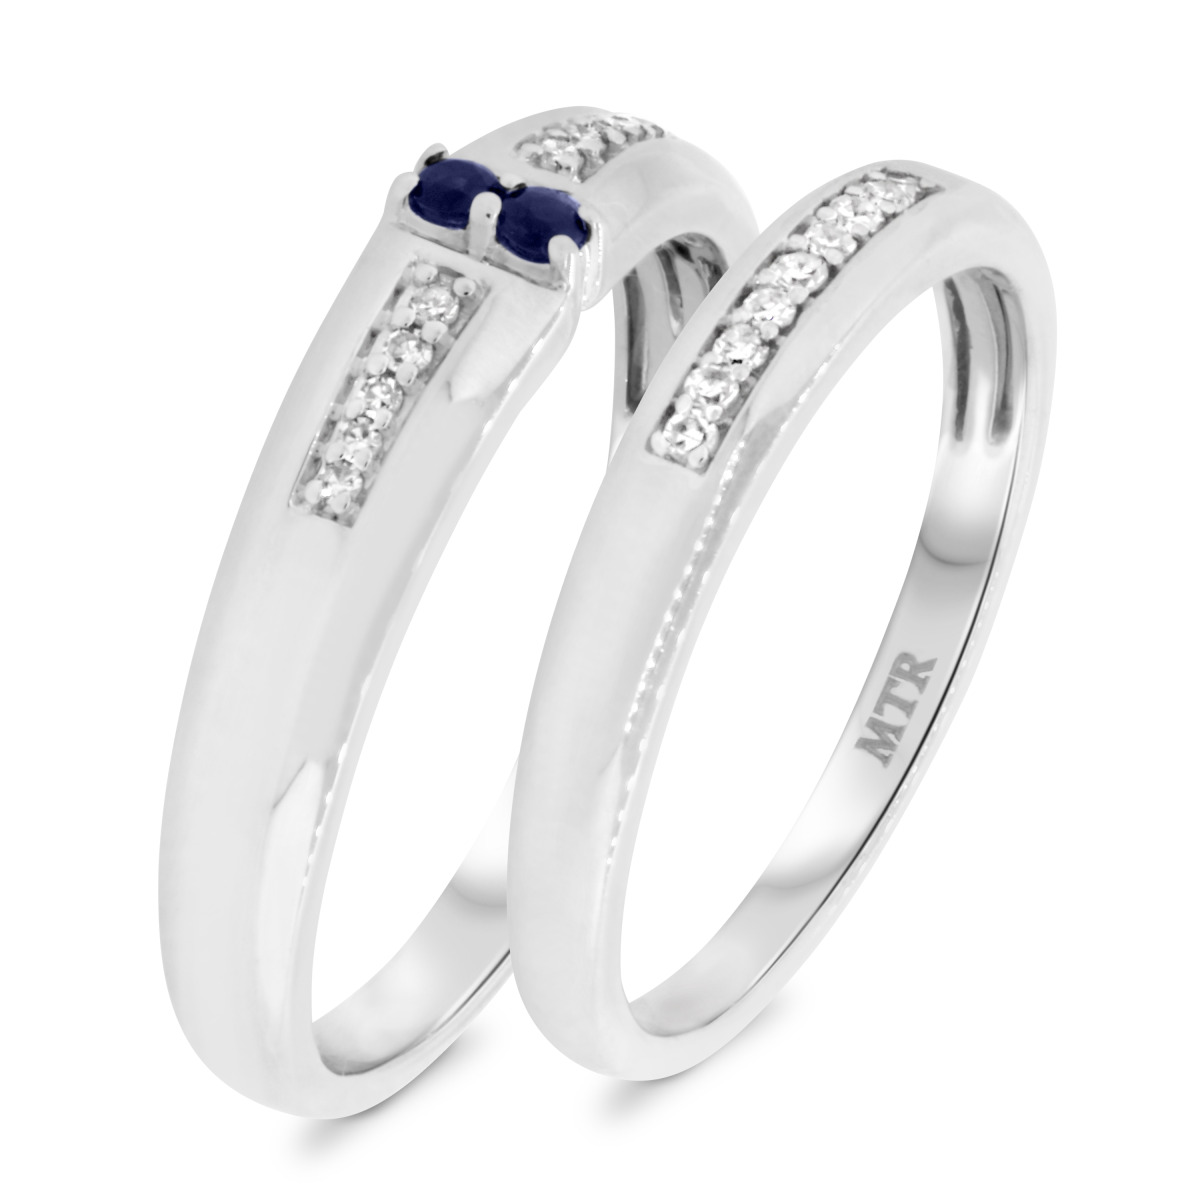 1/5 CT. T.W. Sapphire Matching Wedding Band Set 10K White Gold